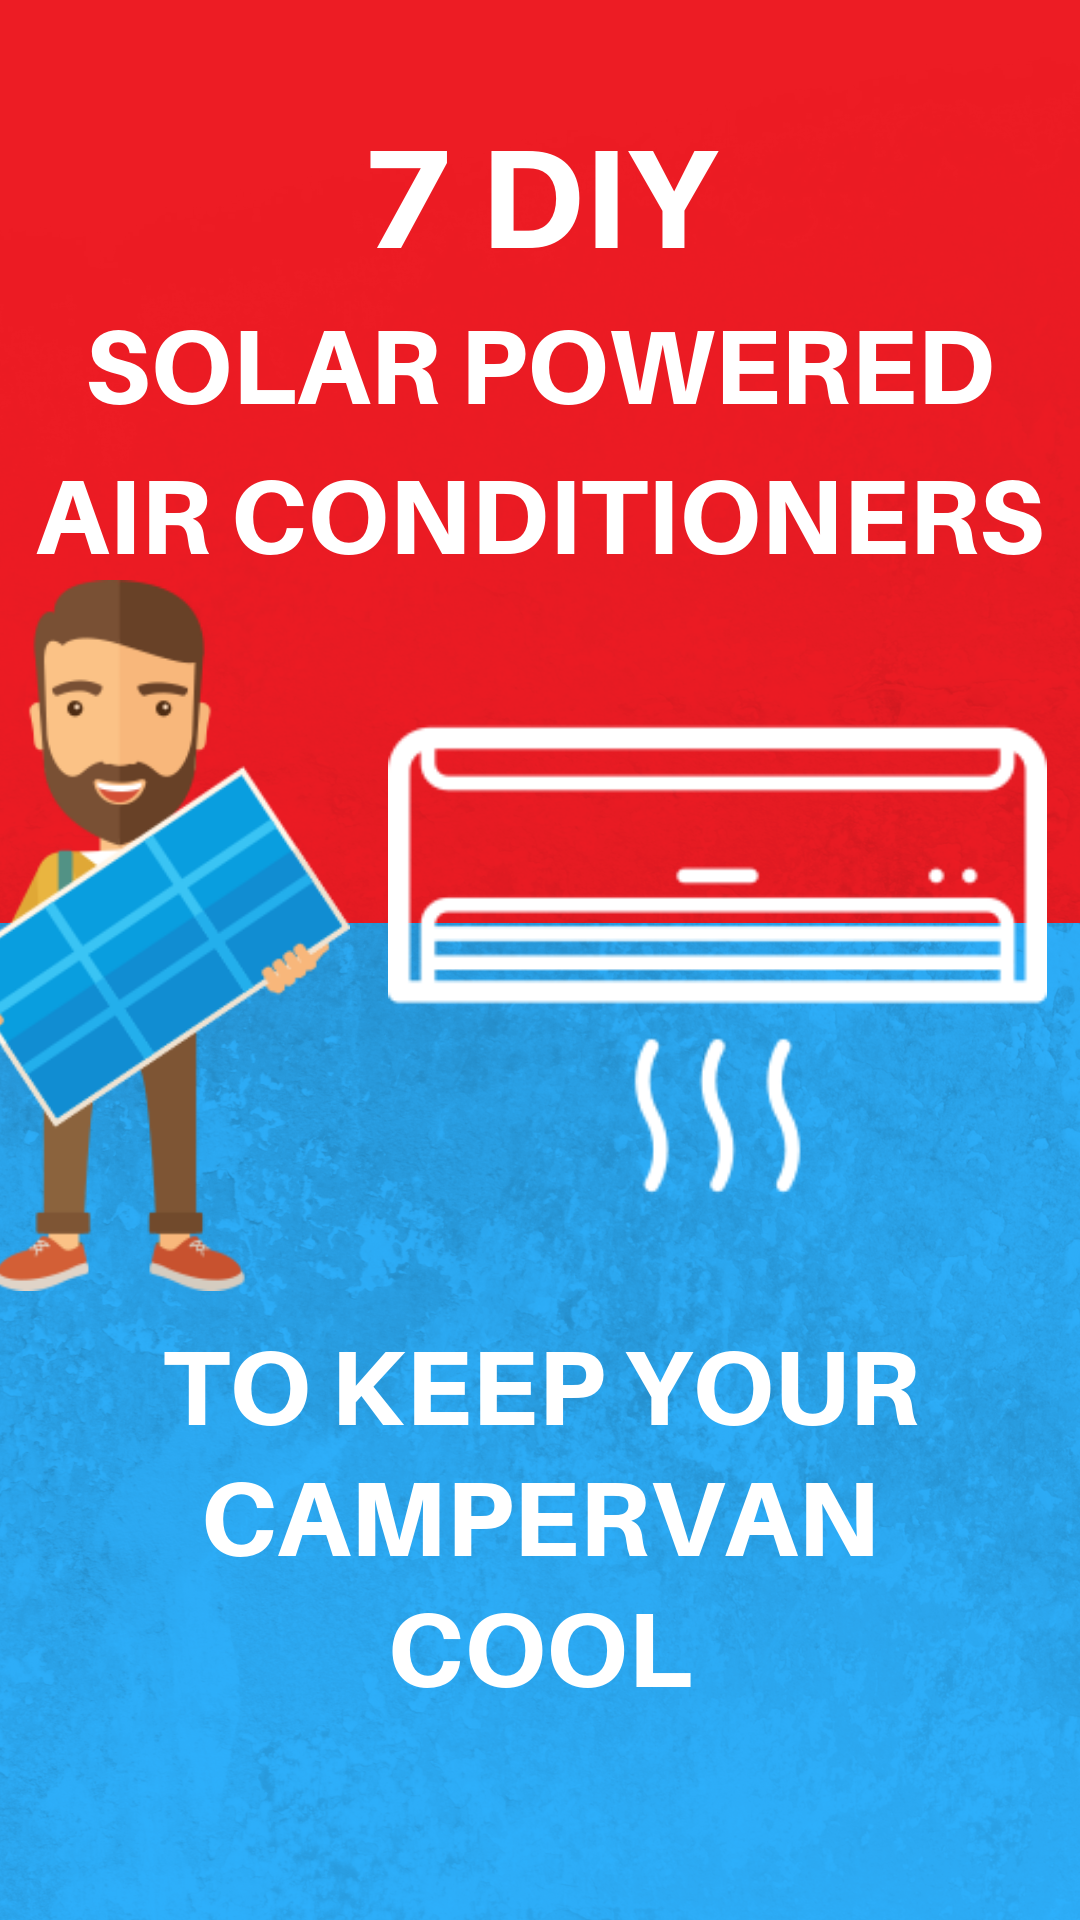 There are a ton of options for heating and air